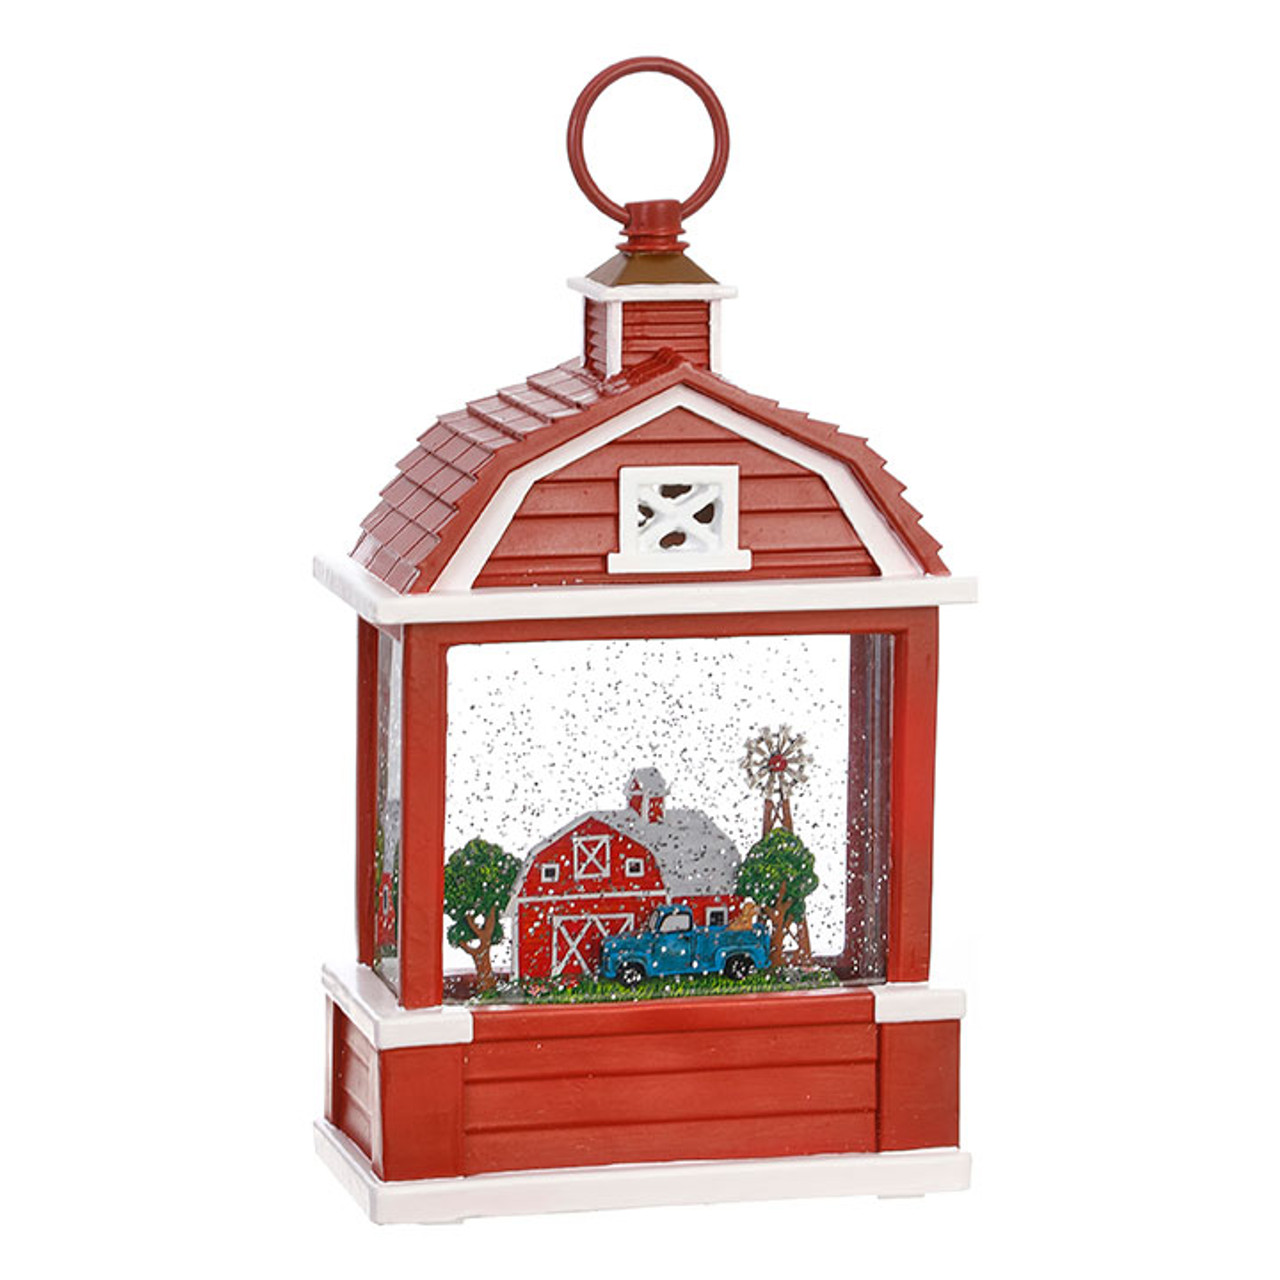 c44d8e2d184f8 Farm Scene Lighted Barn Water Lantern Battery Operated In Swirling Glitter  With